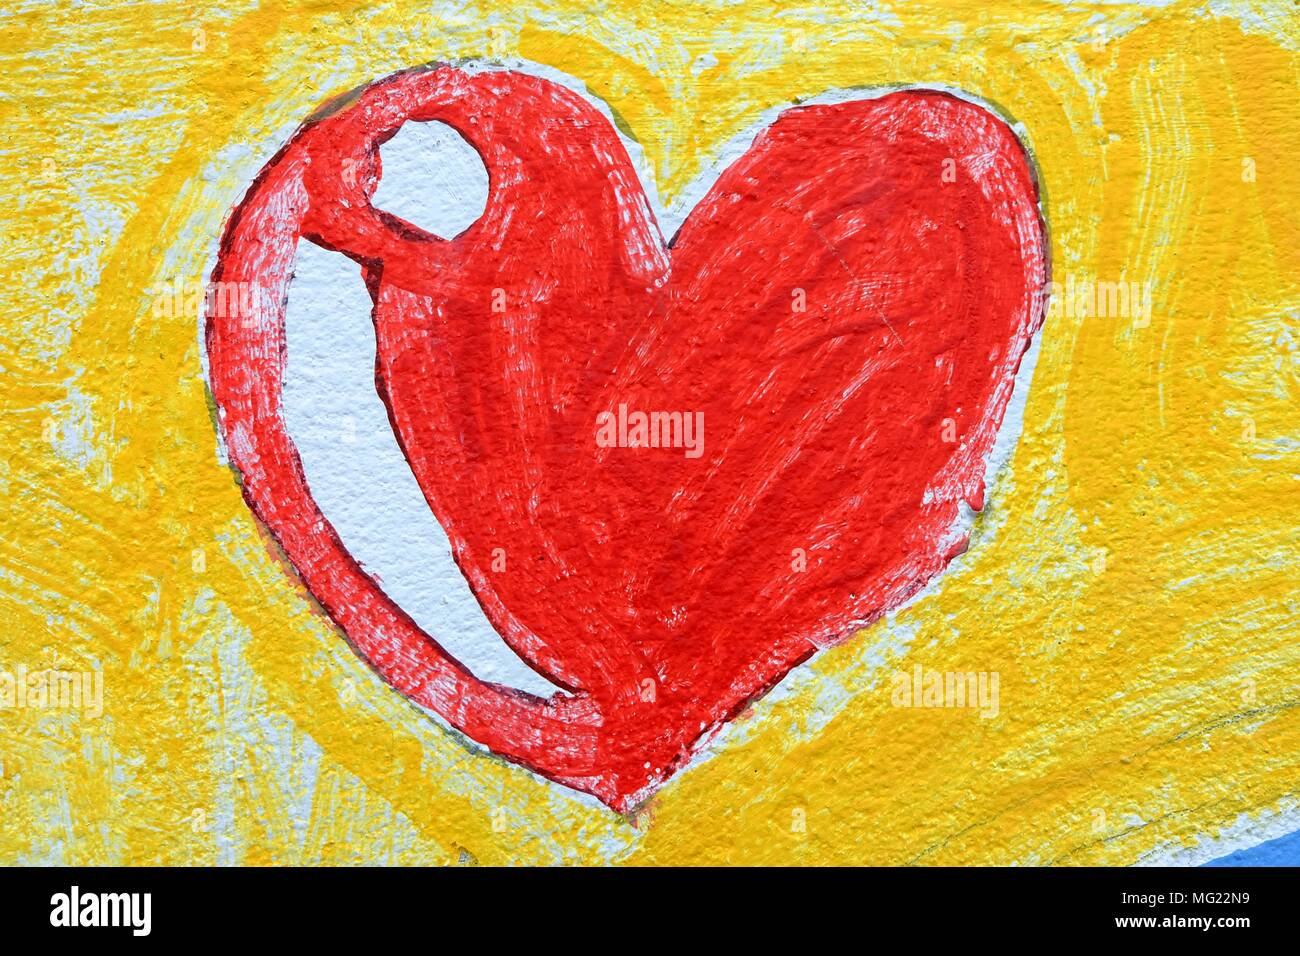 Heart Drawing on Concrete Wall Background. Stock Photo